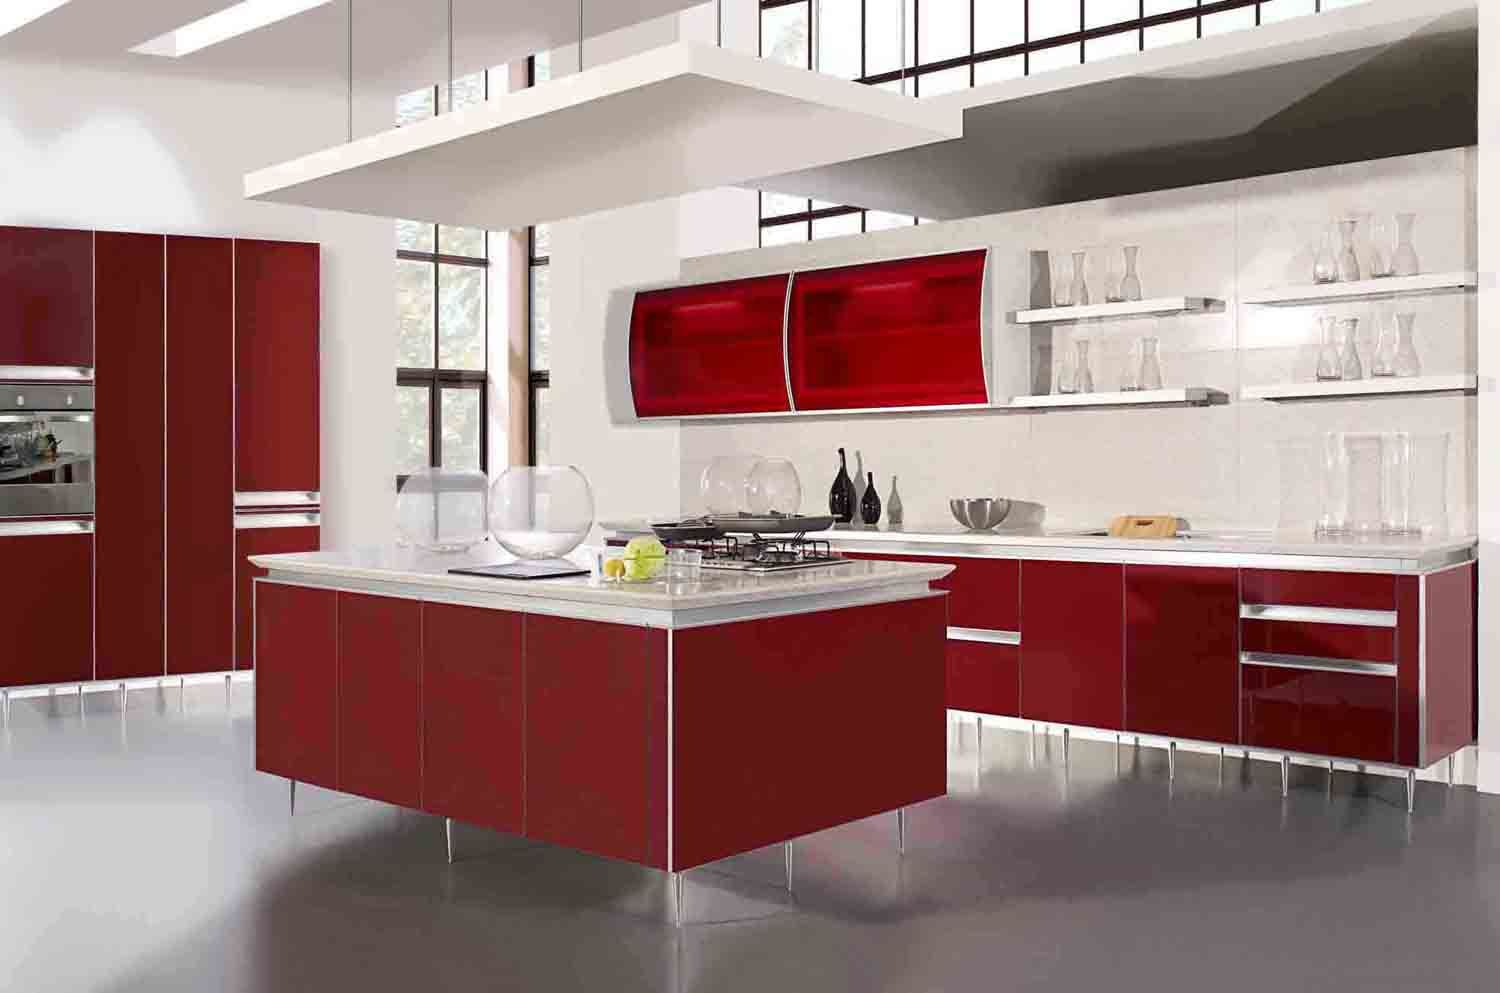 Kitchen Cabinets & Kitchen Design Ideas - 2018 Kitchen